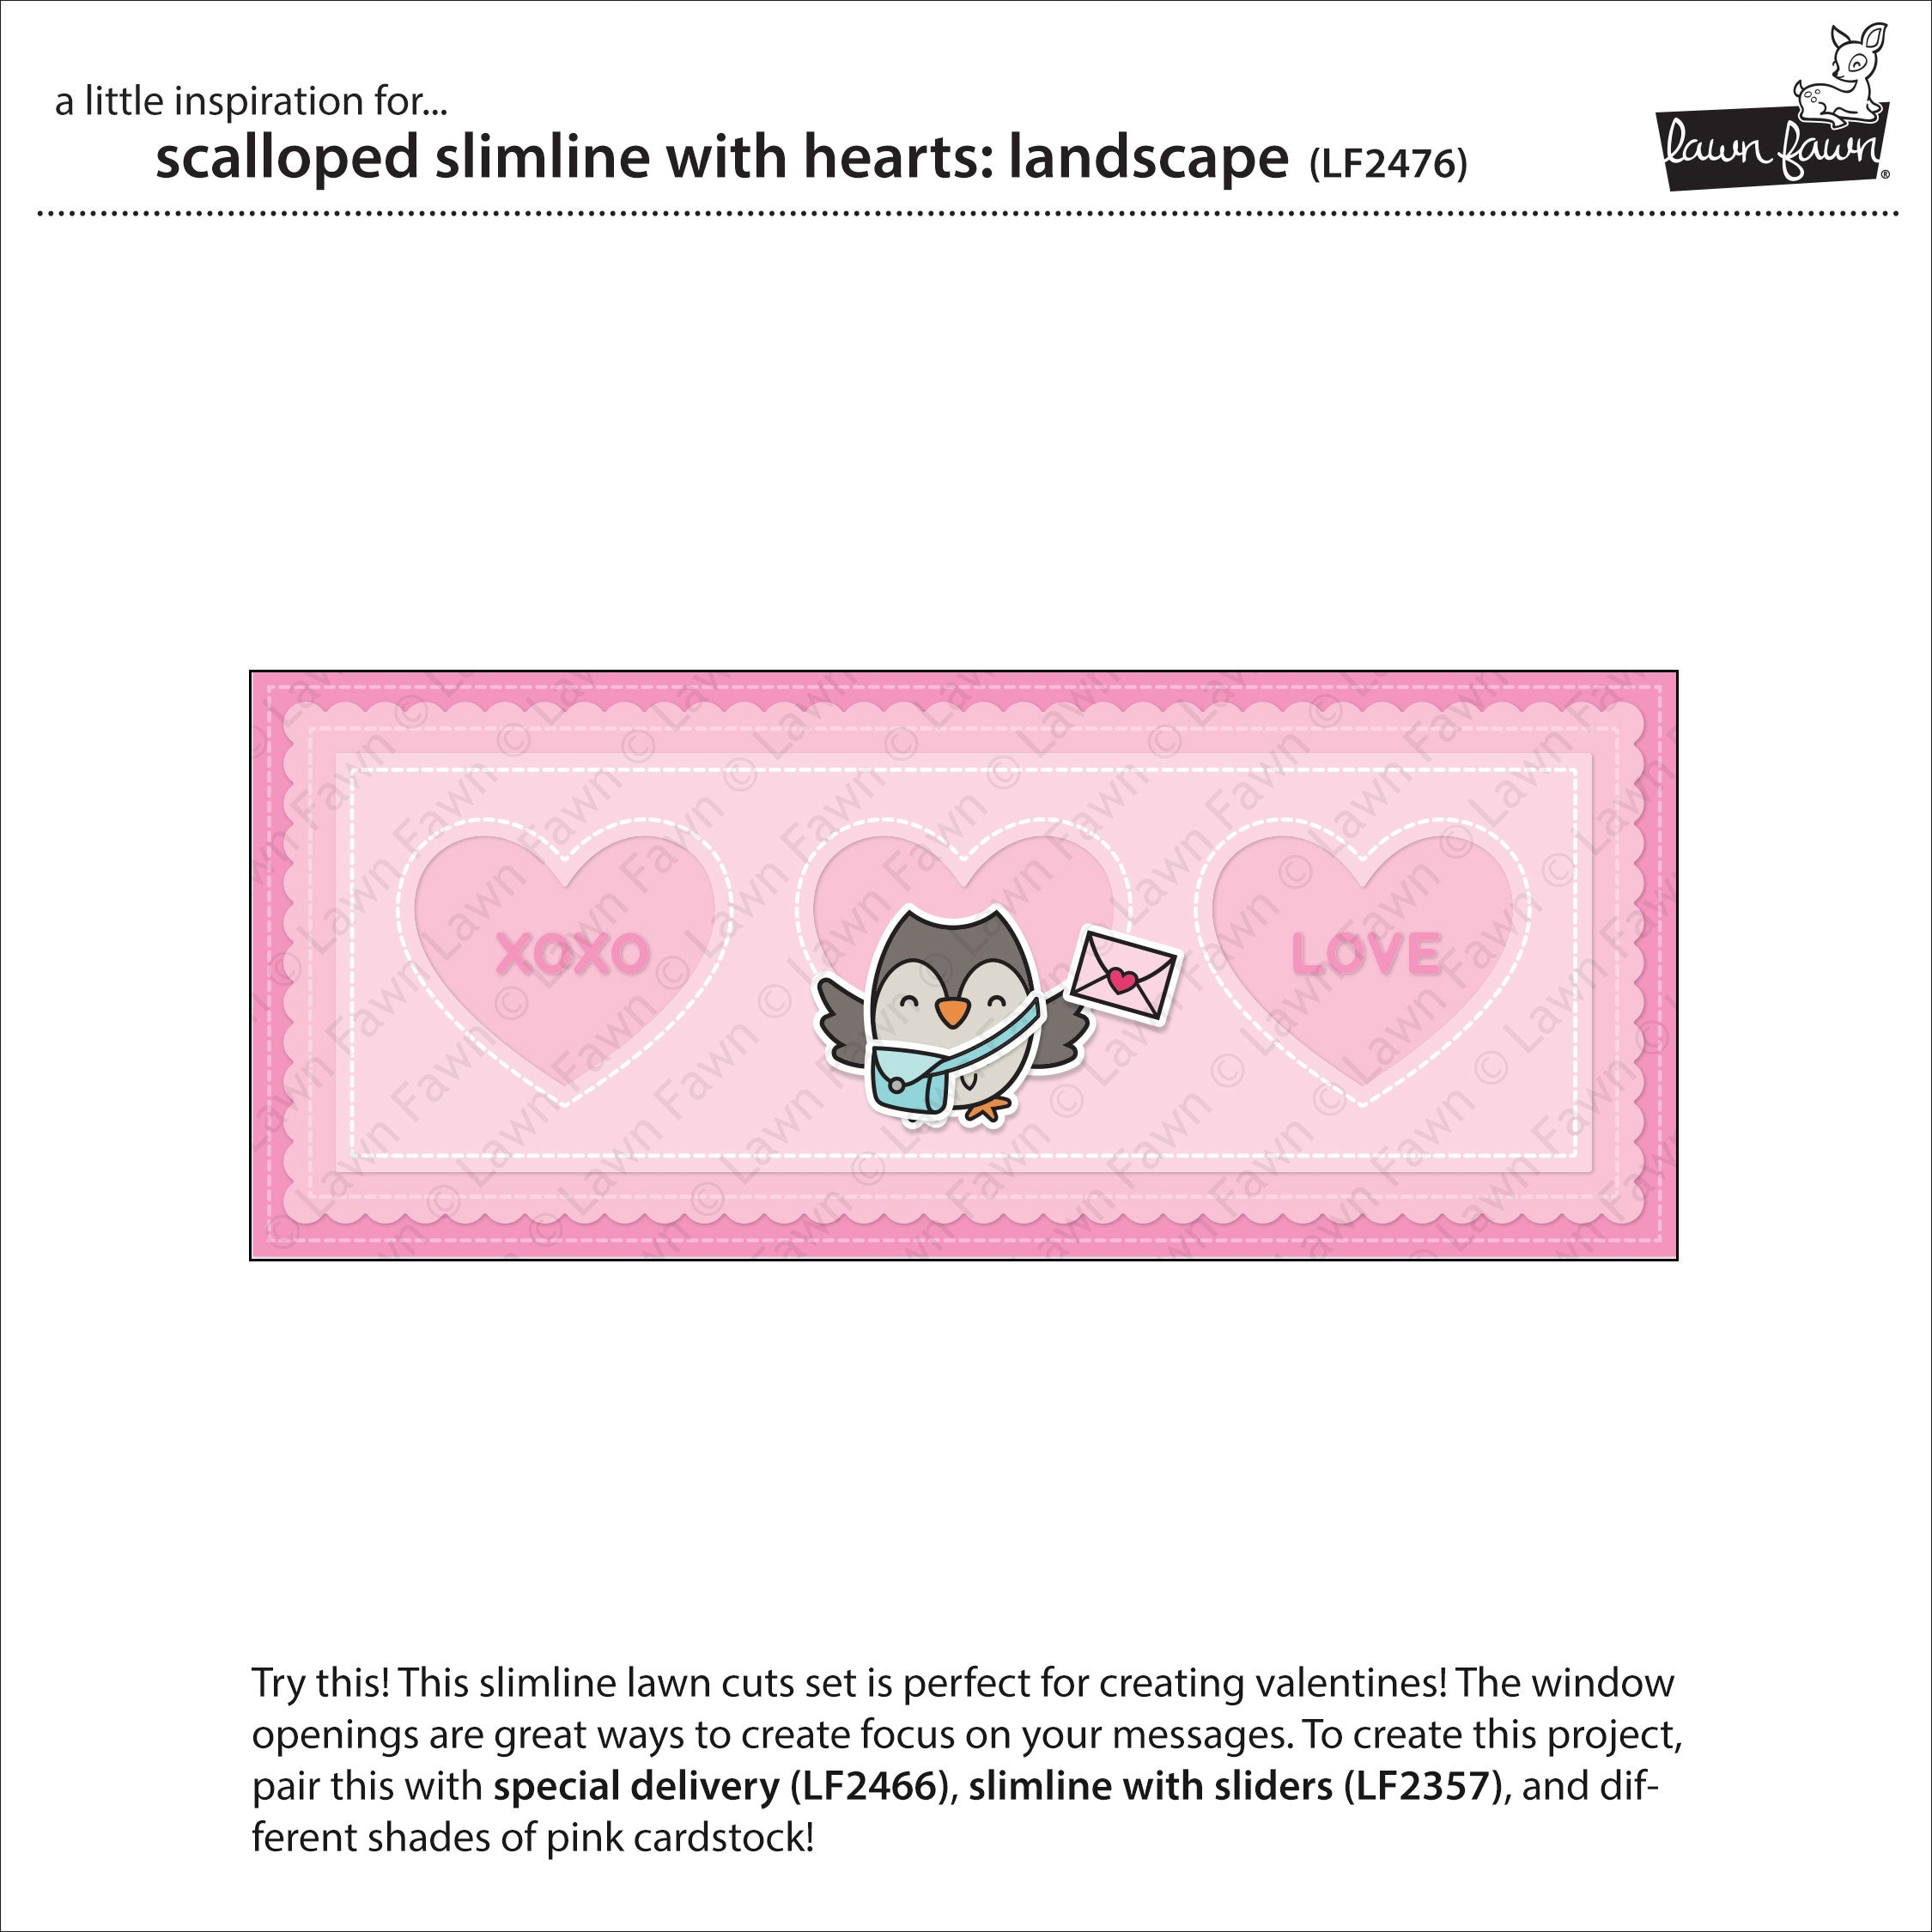 scalloped slimline with hearts: landscape